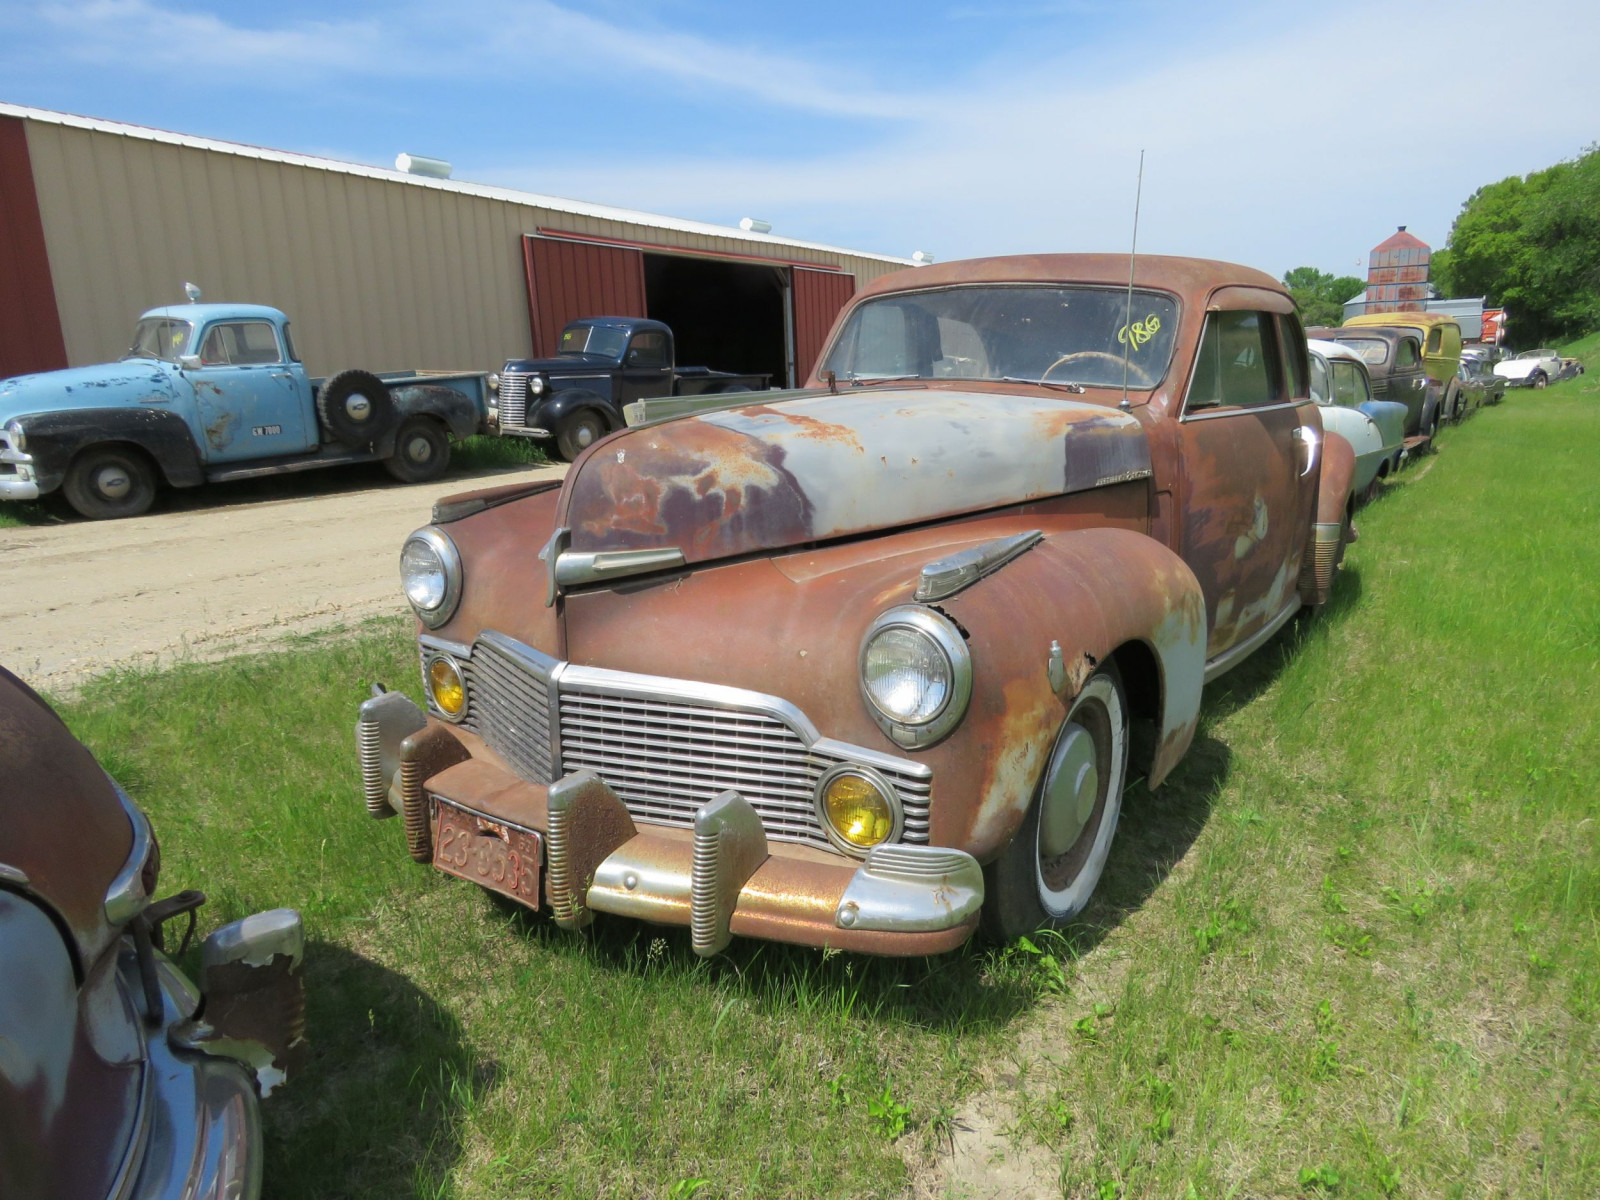 1942 Studebaker President Skyway Coupe 7147049 - Image 1